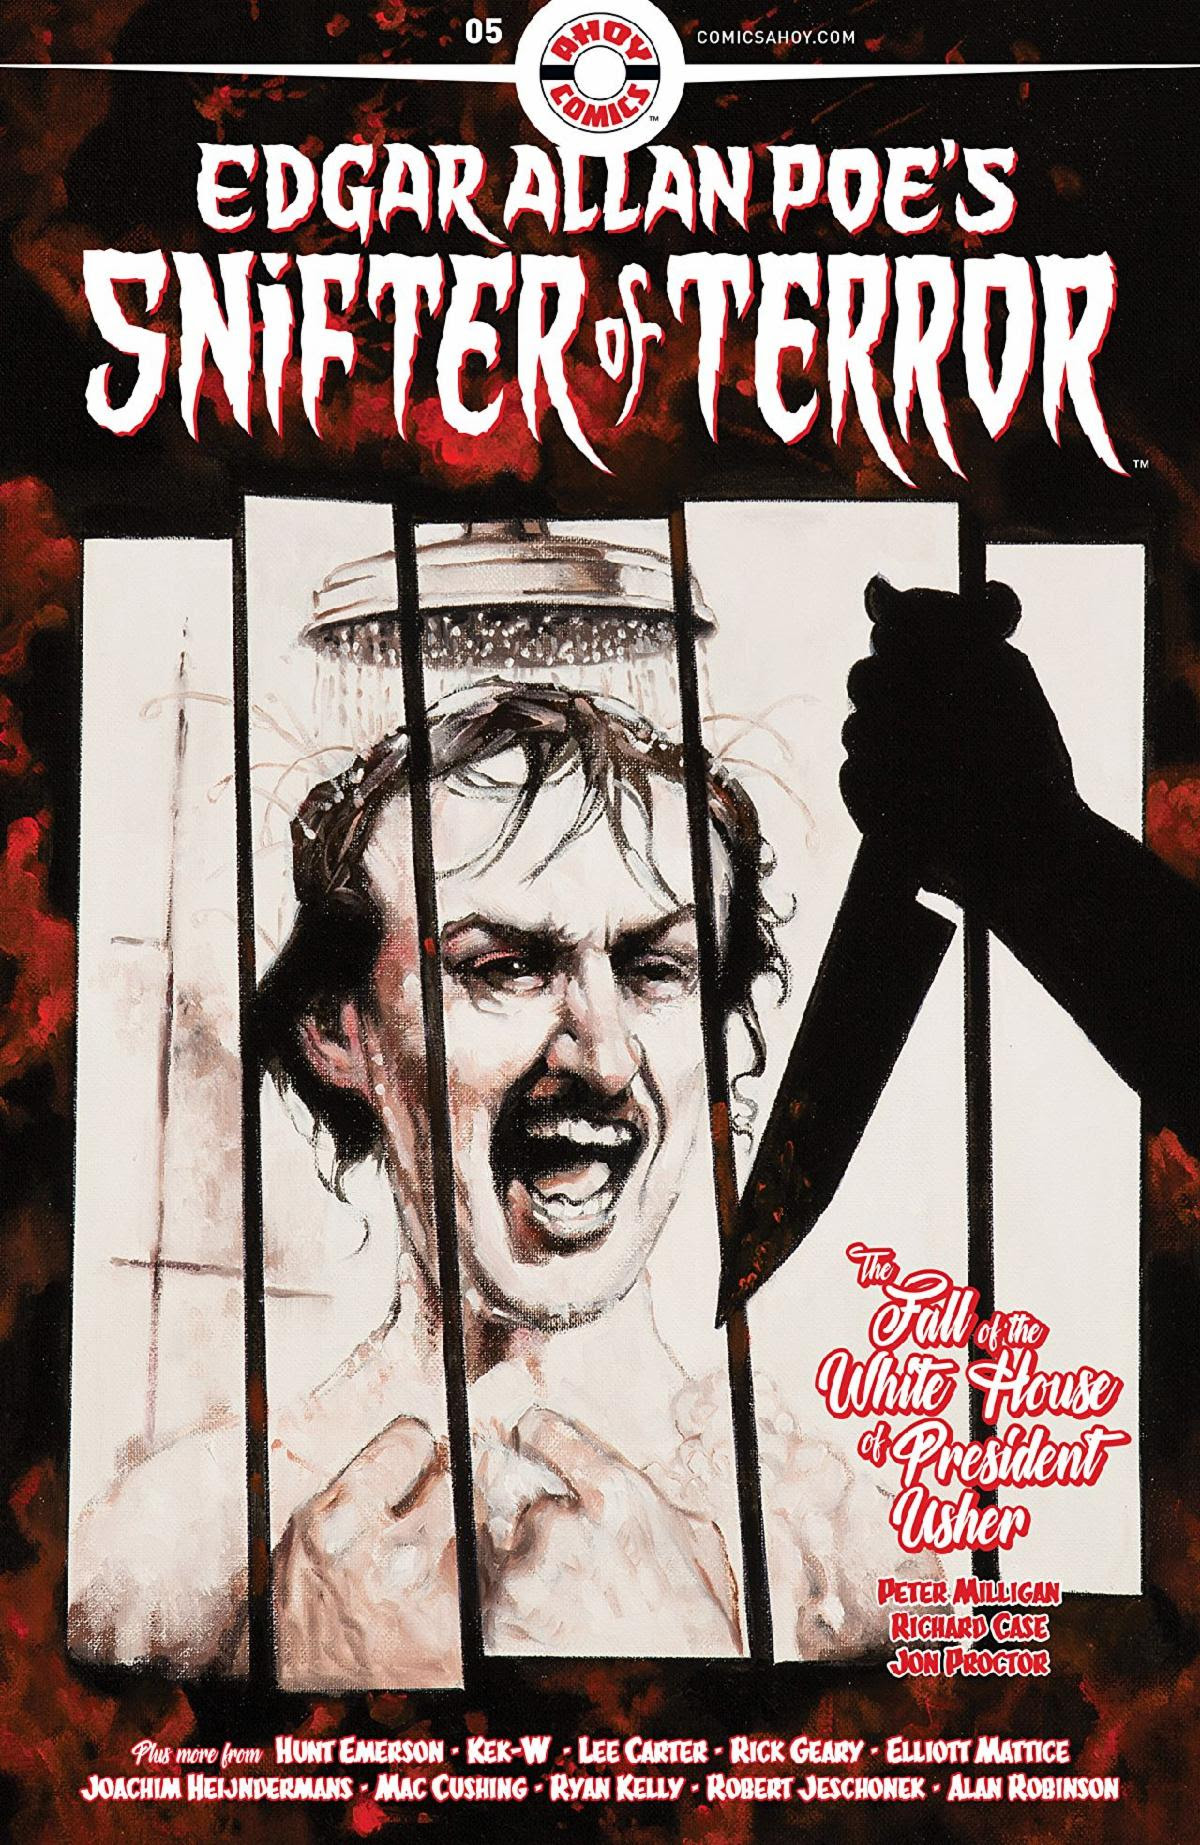 Edgar Allan Poe_s Snifter of Terror by Richard Case